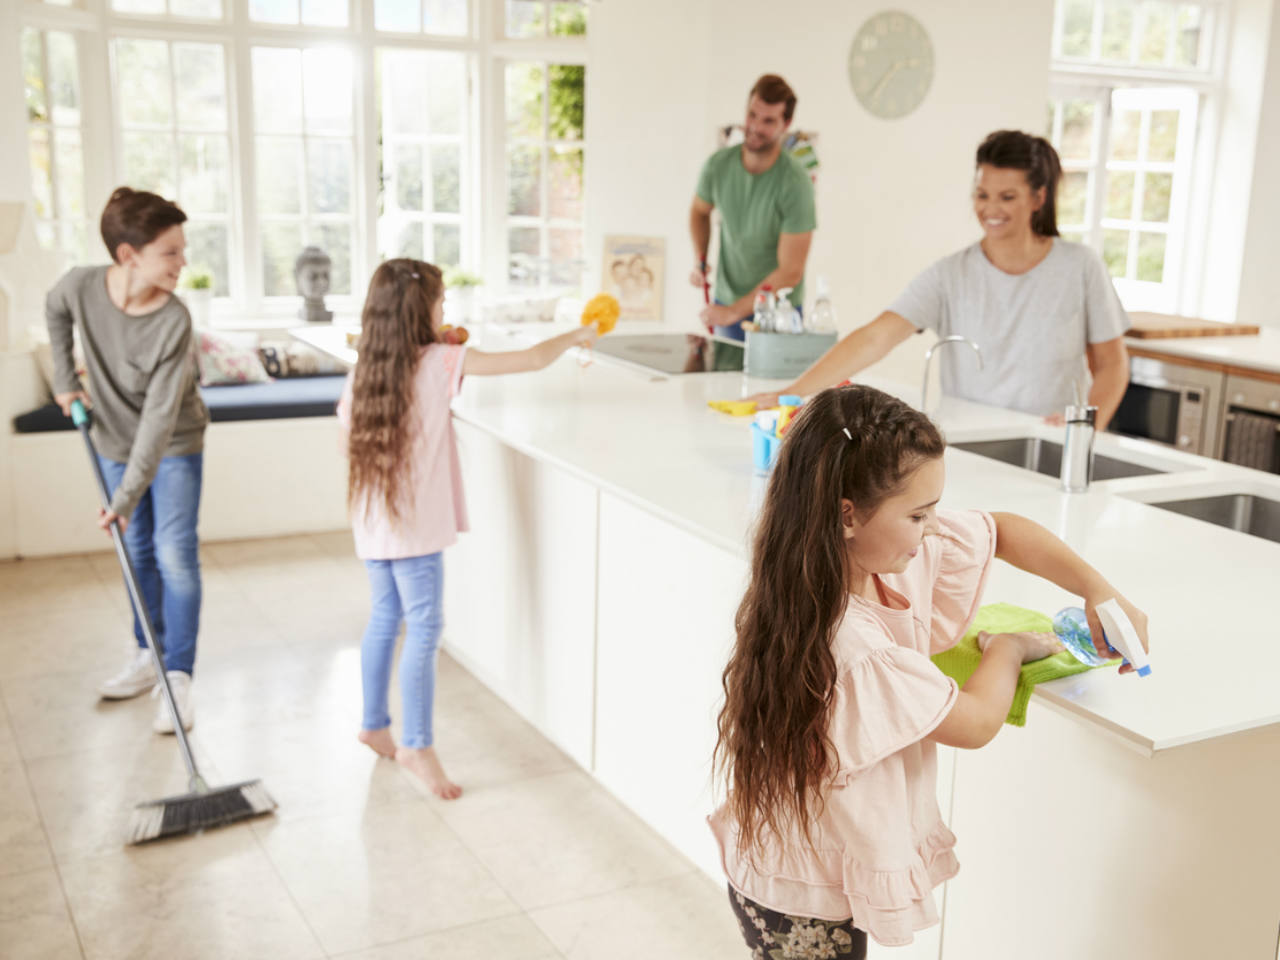 10 Household Chores Every Adult Should Learn